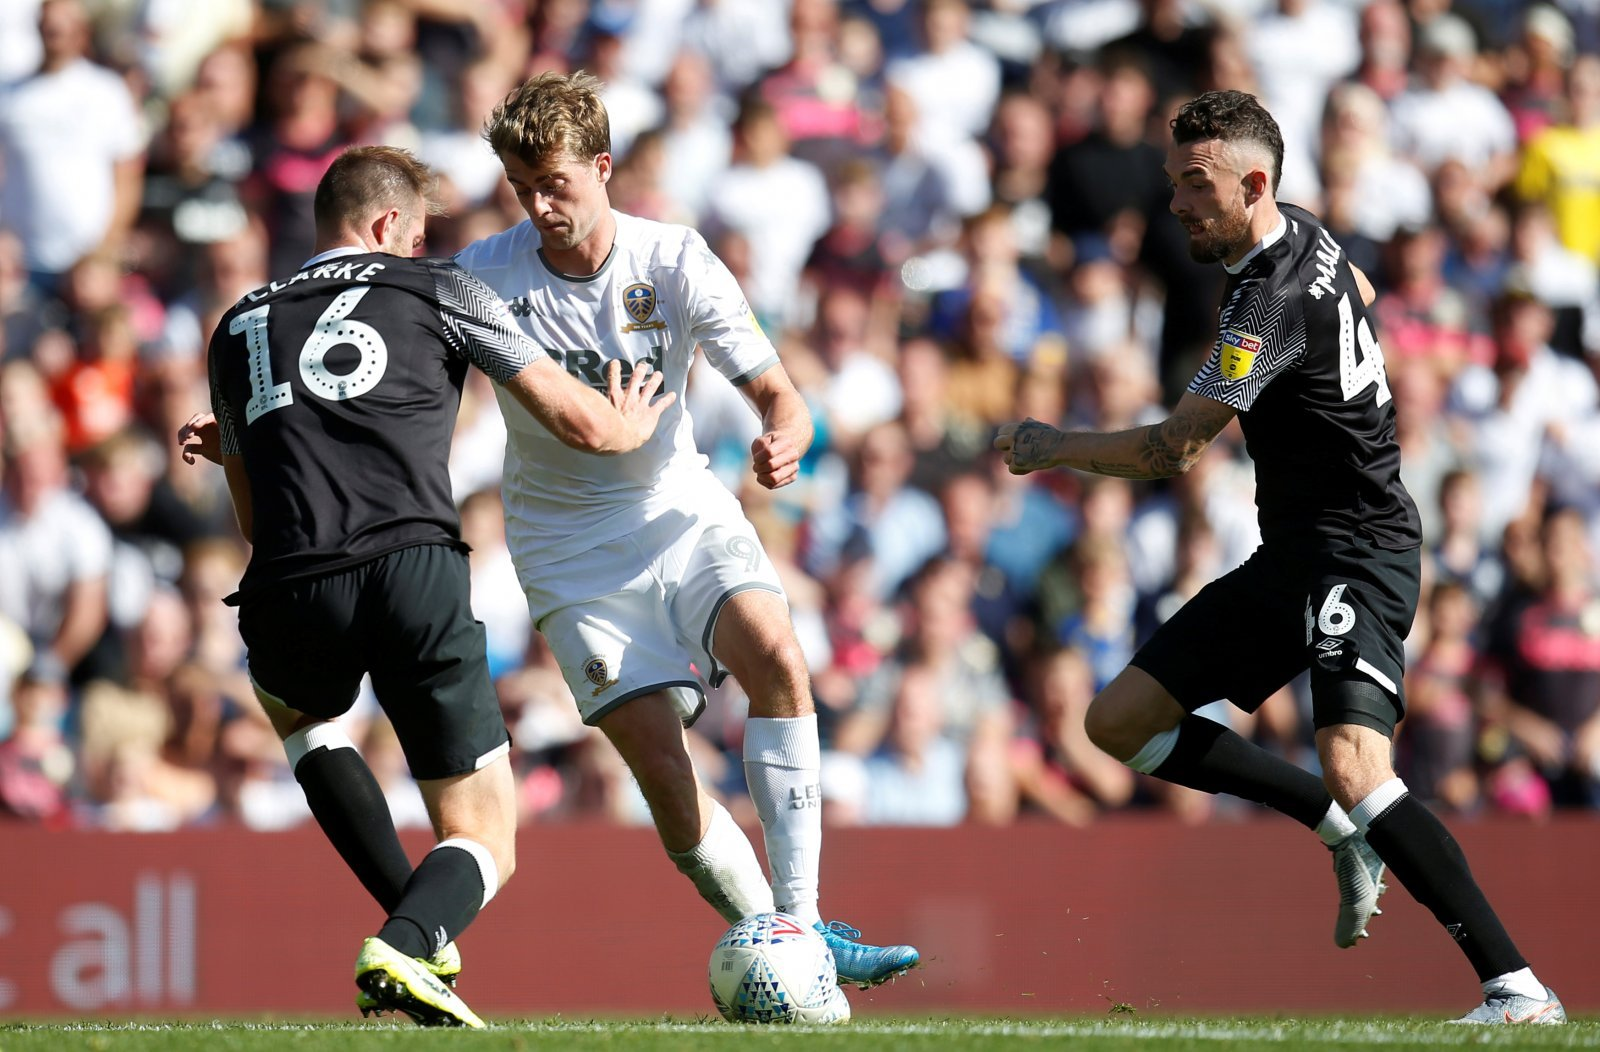 Leeds United: Fans reflect on Patrick Bamford's key moment in Derby County draw